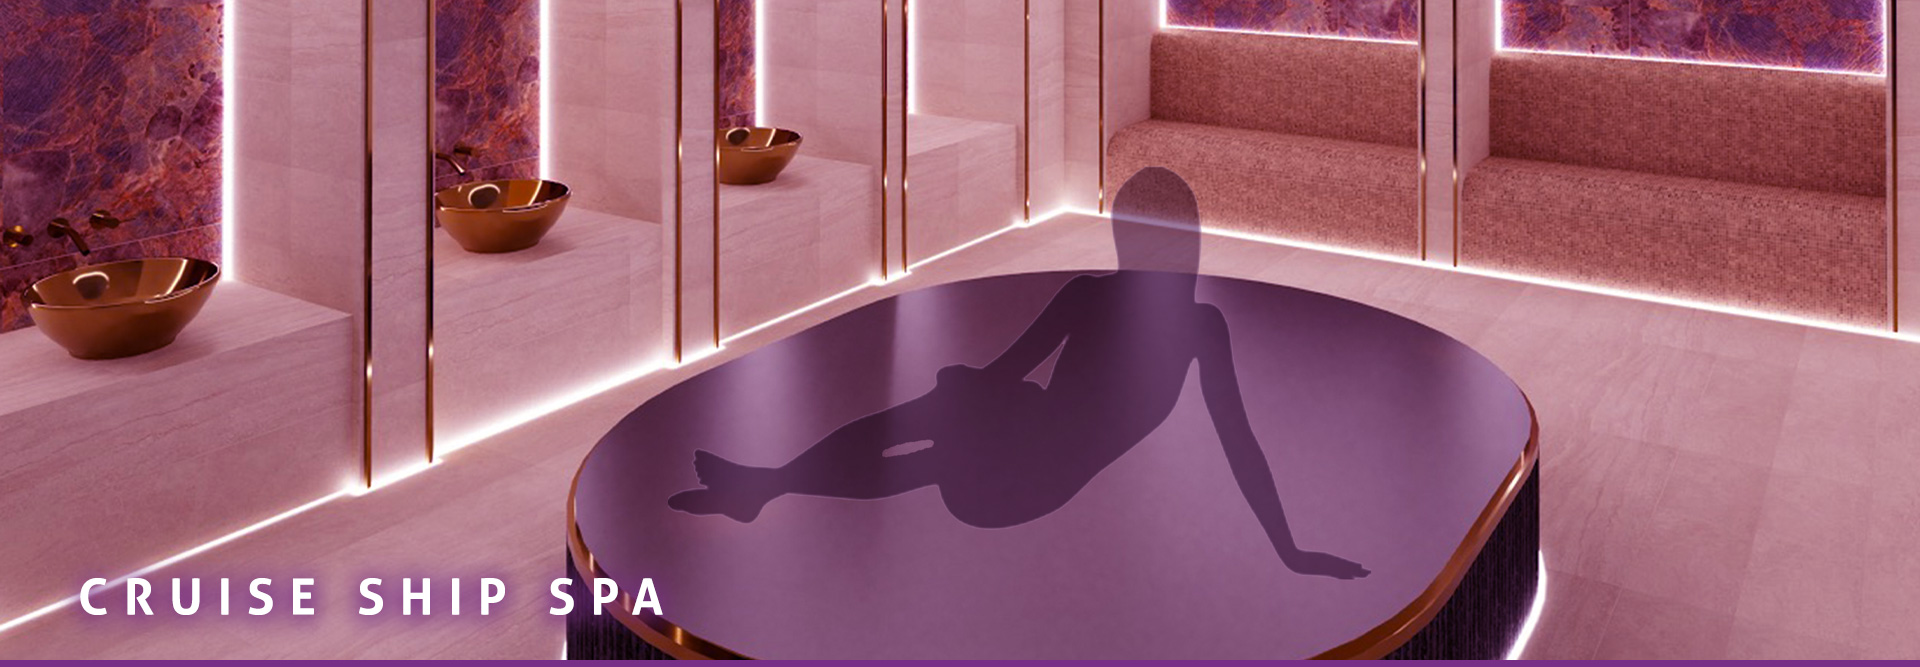 ABOUT THE CRUISE SHIP SPA Banner 05